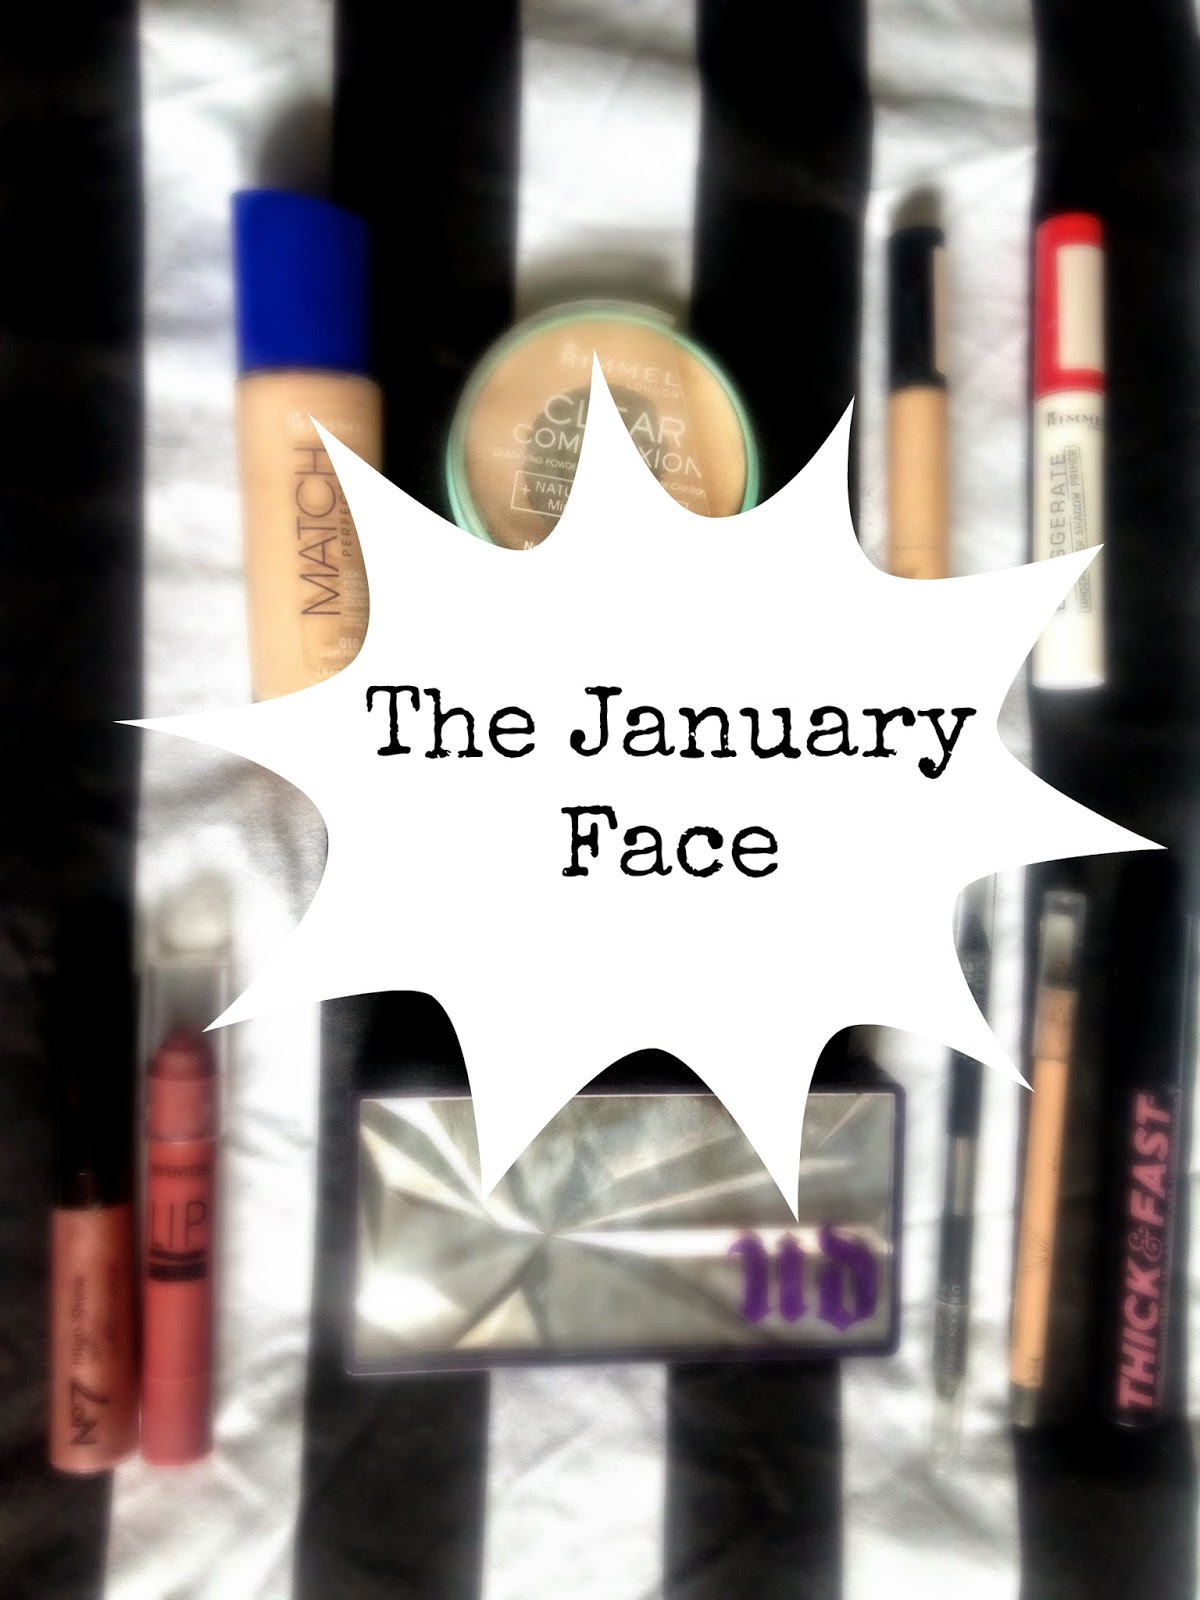 The January Face